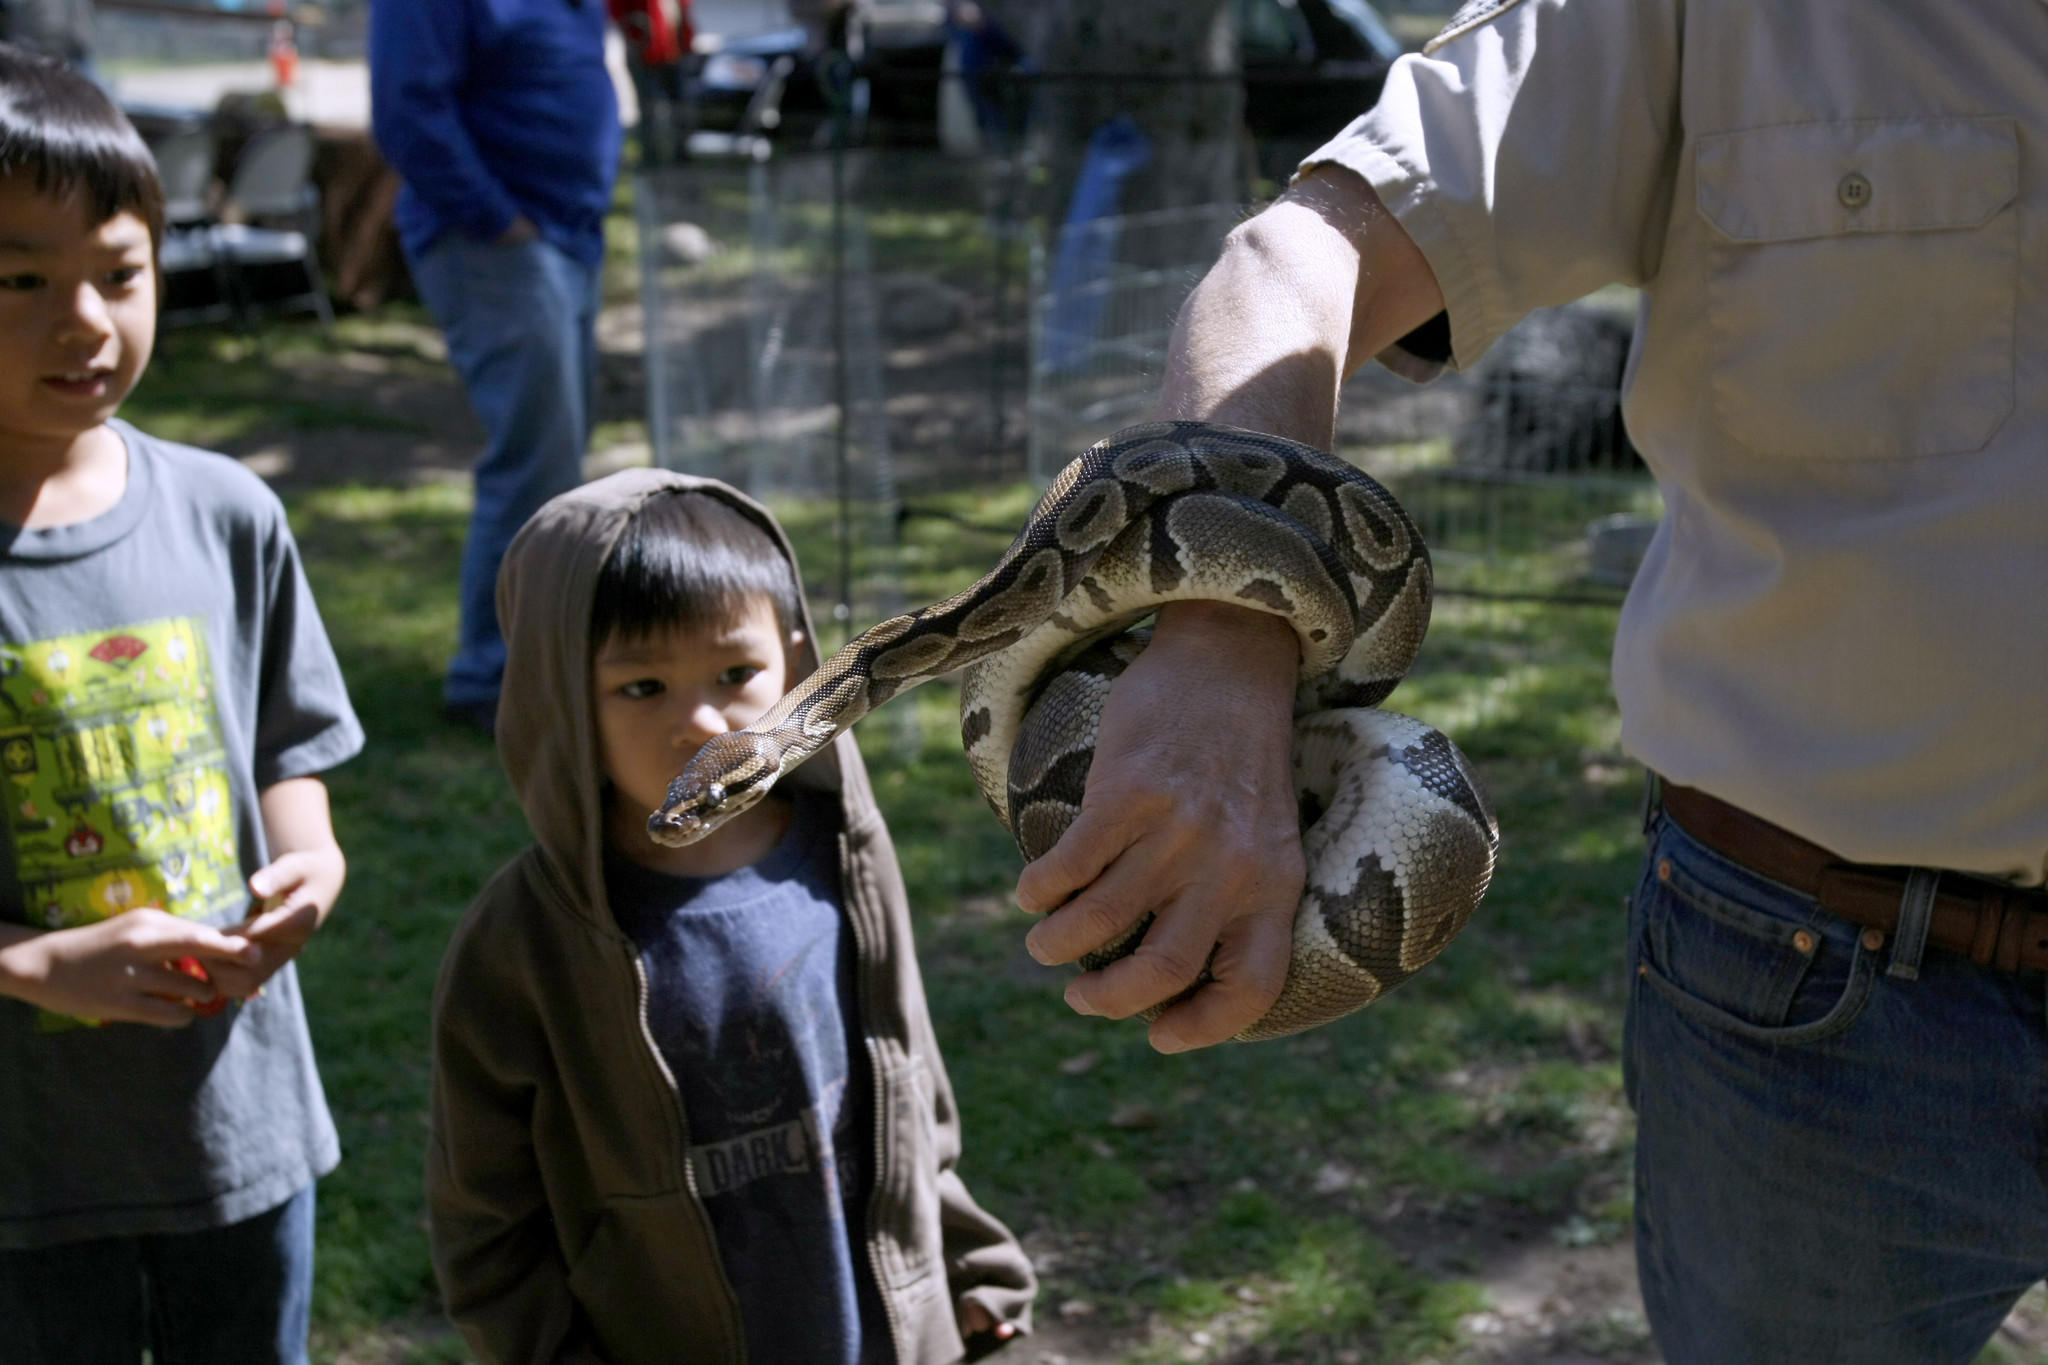 Brothers Mateo Soriano, 8, left, and Joaquin Soriano, 5, right, take a close look at a ball python snake at the annual Hometown Country Fair at Crescenta Valley Park in La Crescenta on Saturday, April 5, 2014.